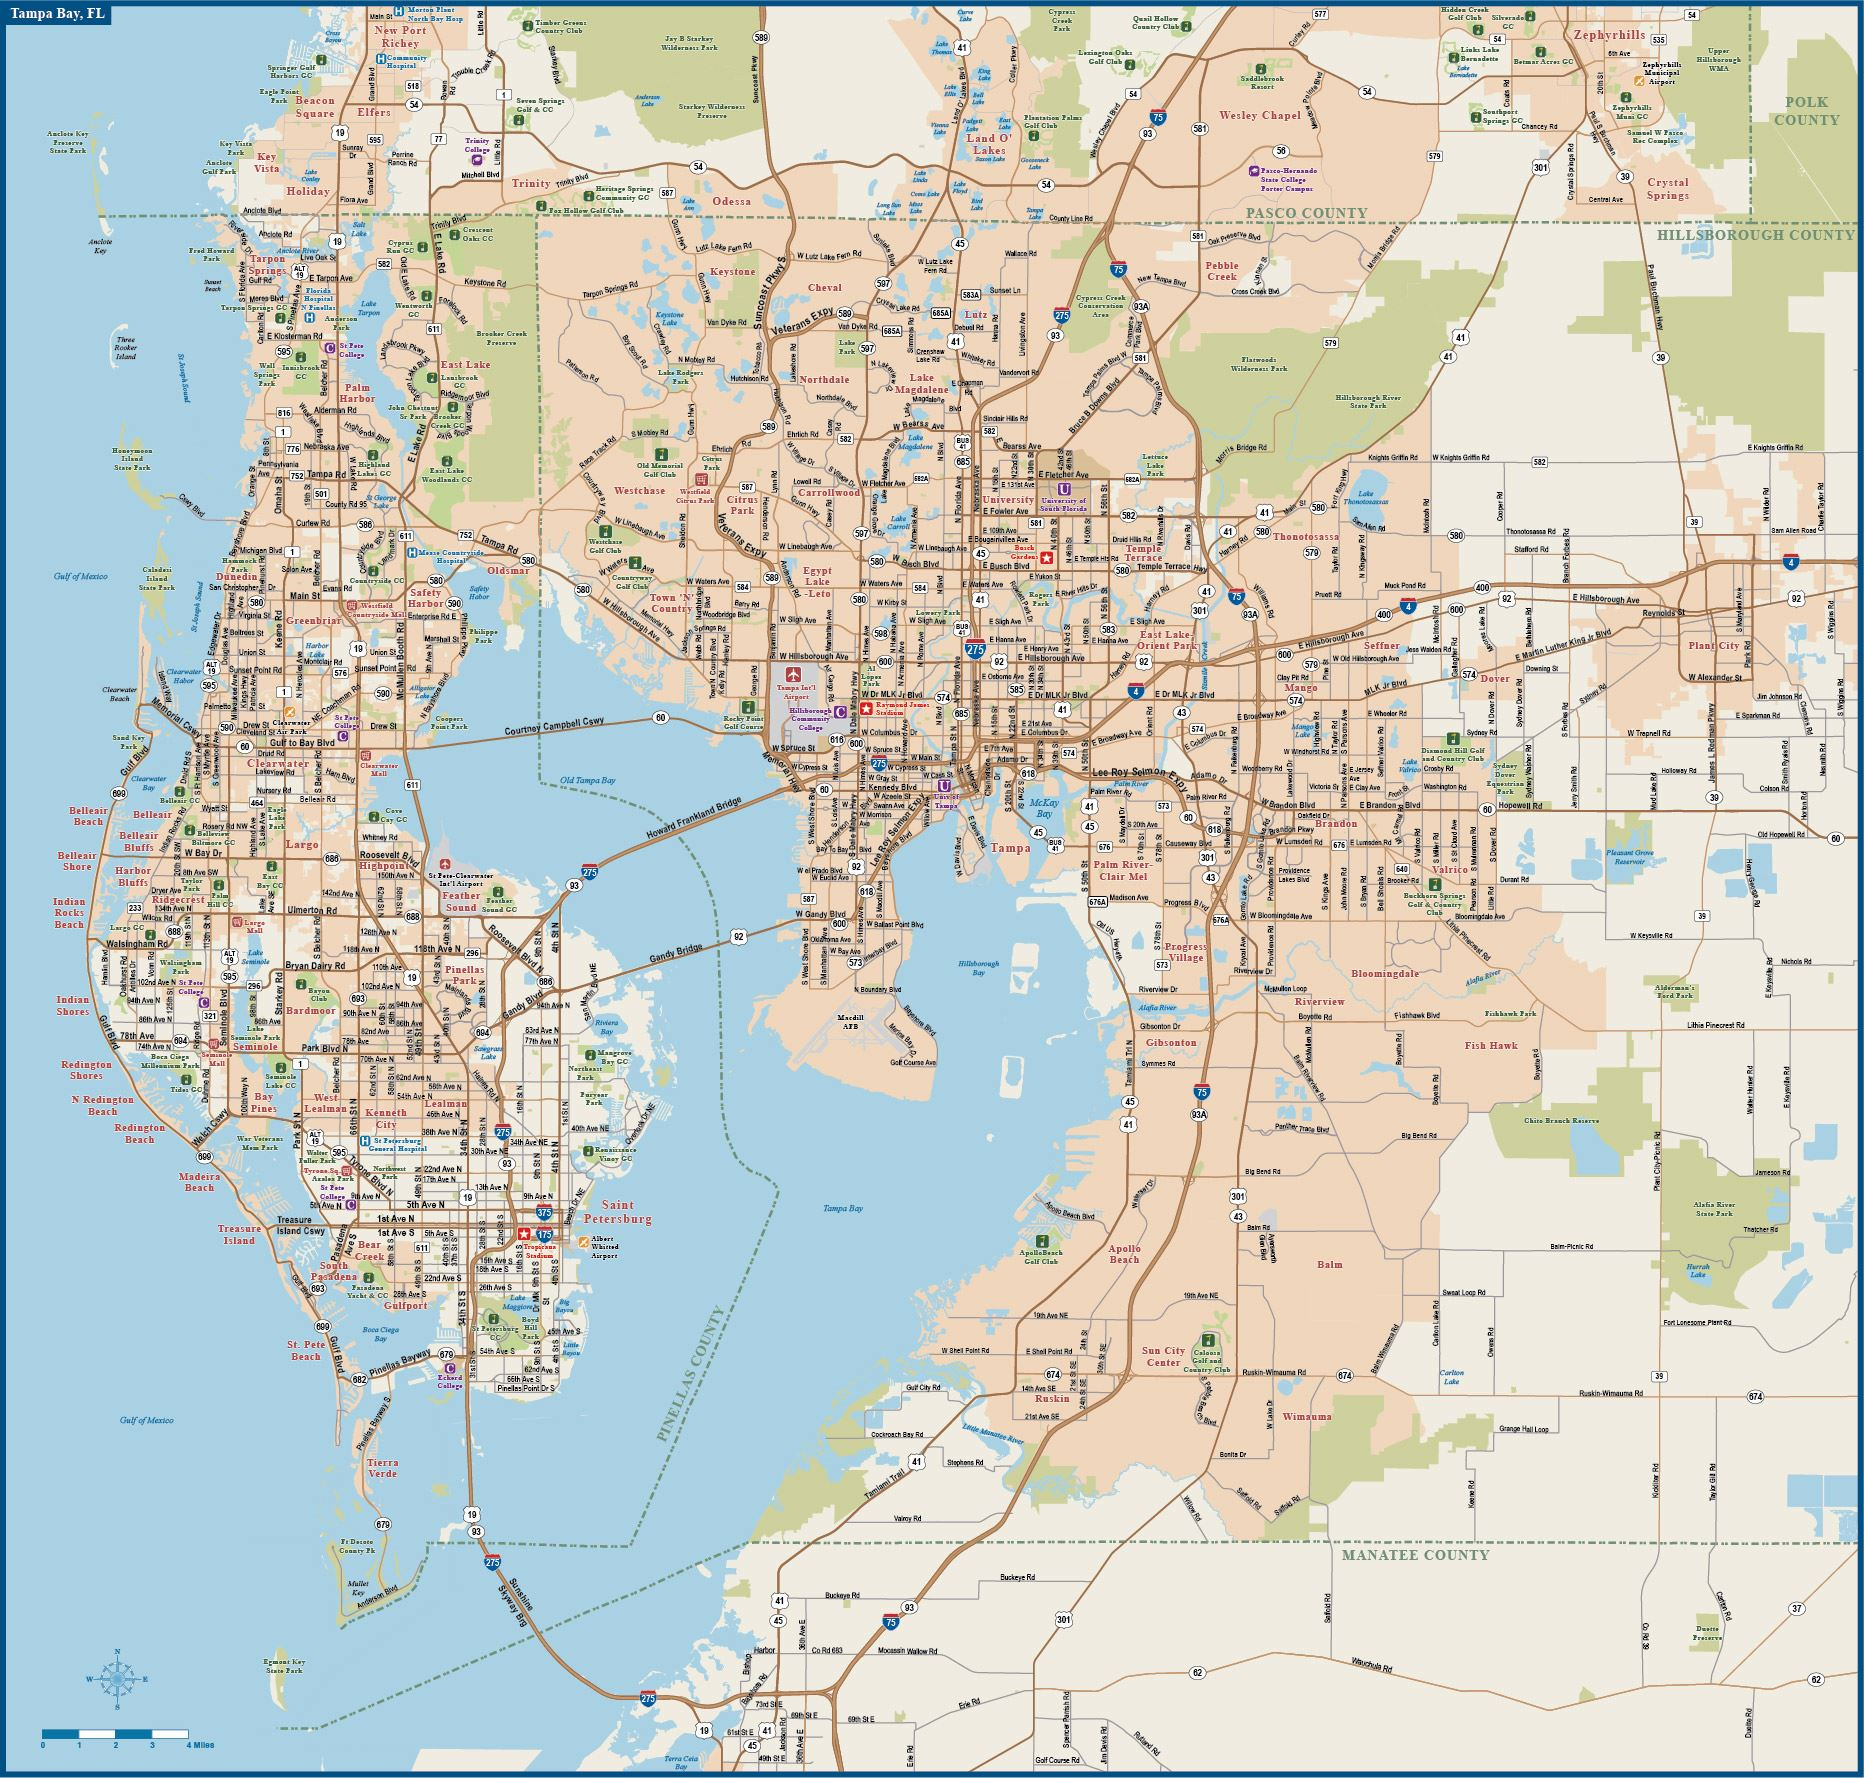 Large Tampa Maps For Free Download And Print   High-Resolution And - Map Of Clearwater Florida And Surrounding Areas